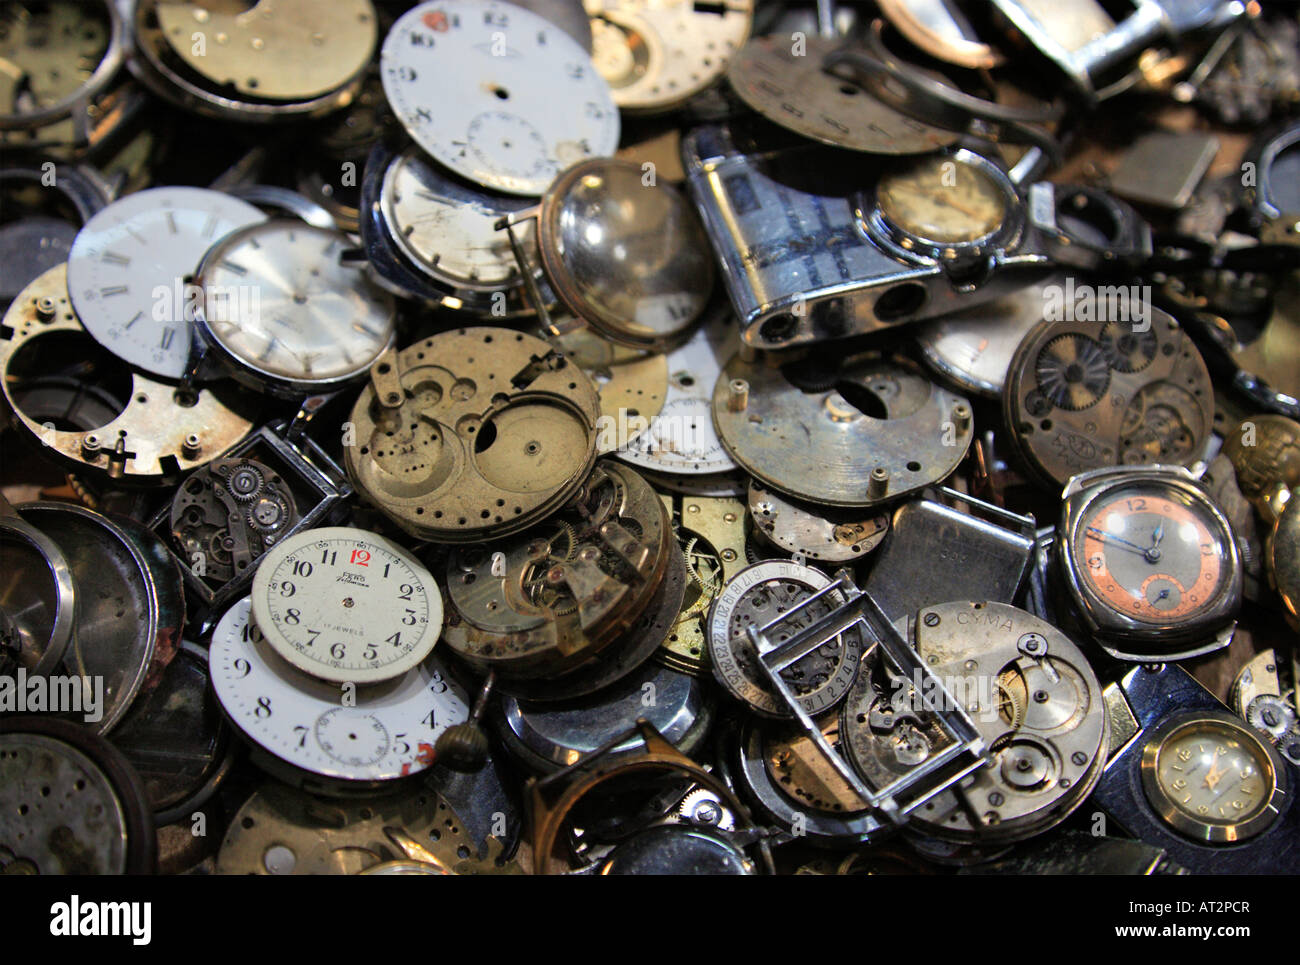 Old Antique Clock Royalty Free Stock Images - Image: 8225649